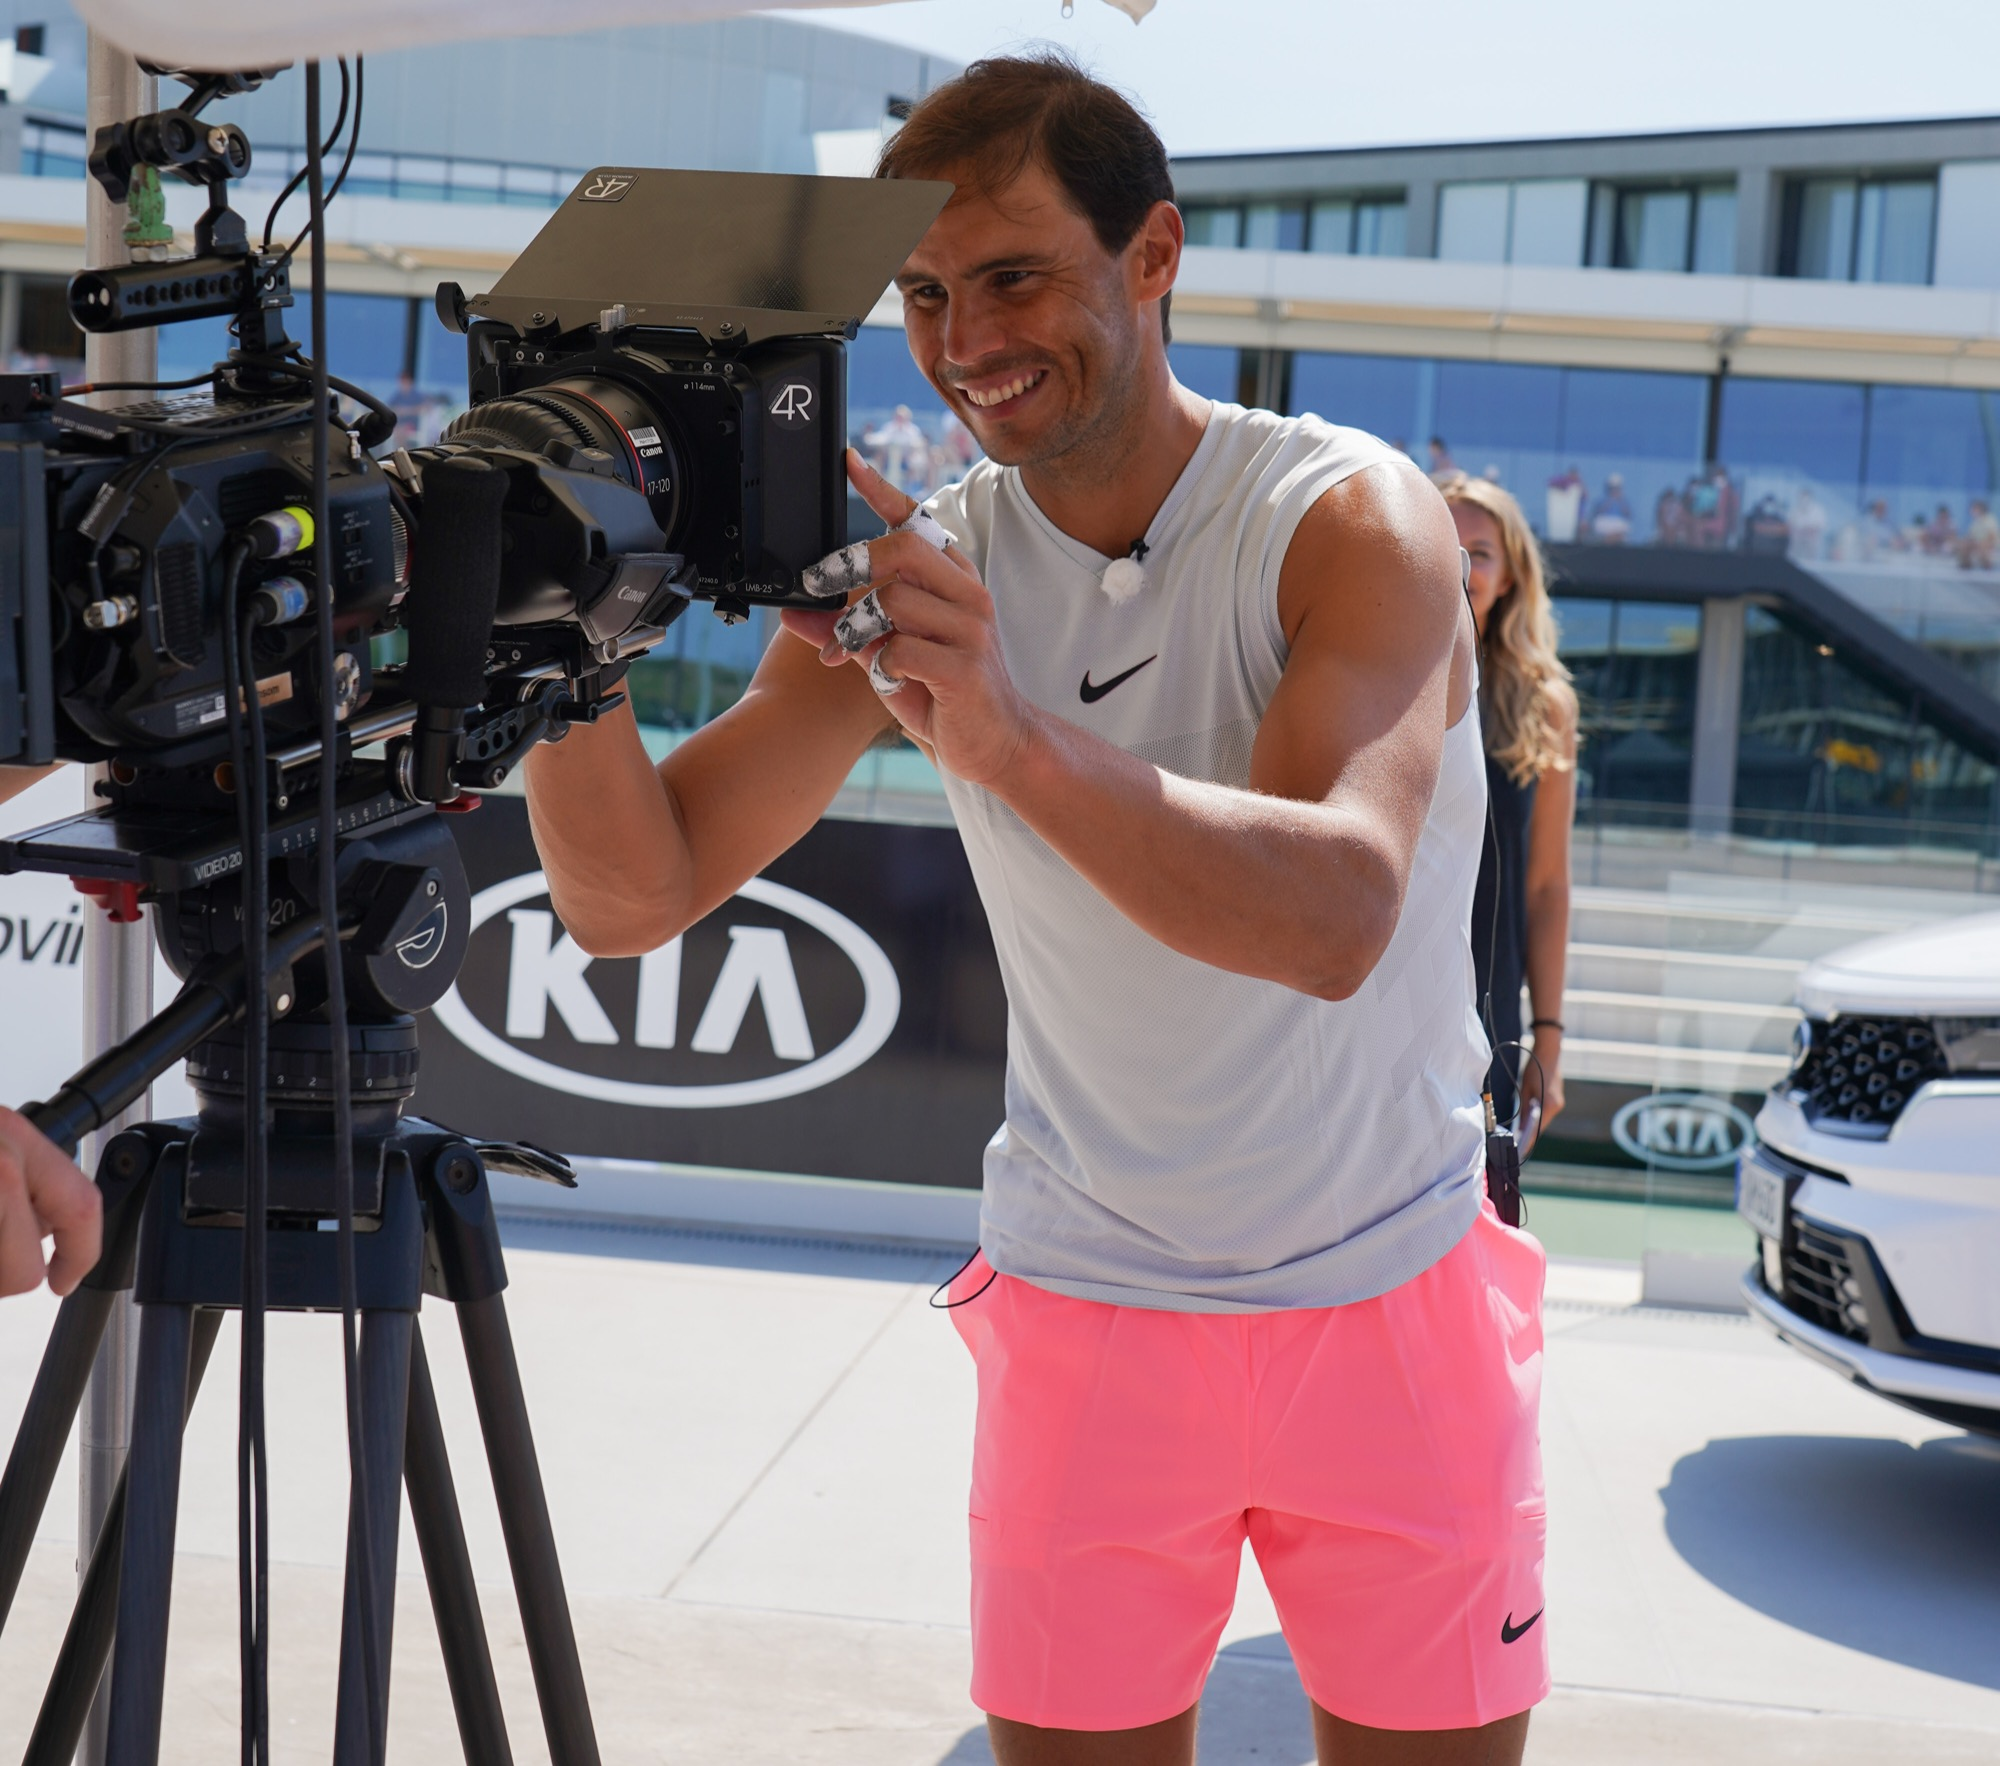 Kia and Rafael Nadal extend brand ambassador partnership.